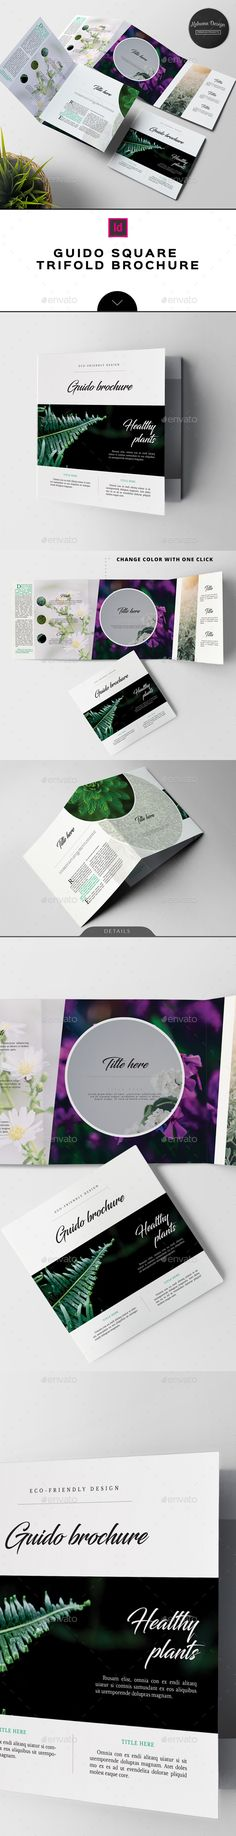 Guido Eco Garden Square Brochure Template InDesign INDD. Download here: https://graphicriver.net/item/guido-eco-garden-square-brochure/17655632?ref=ksioks